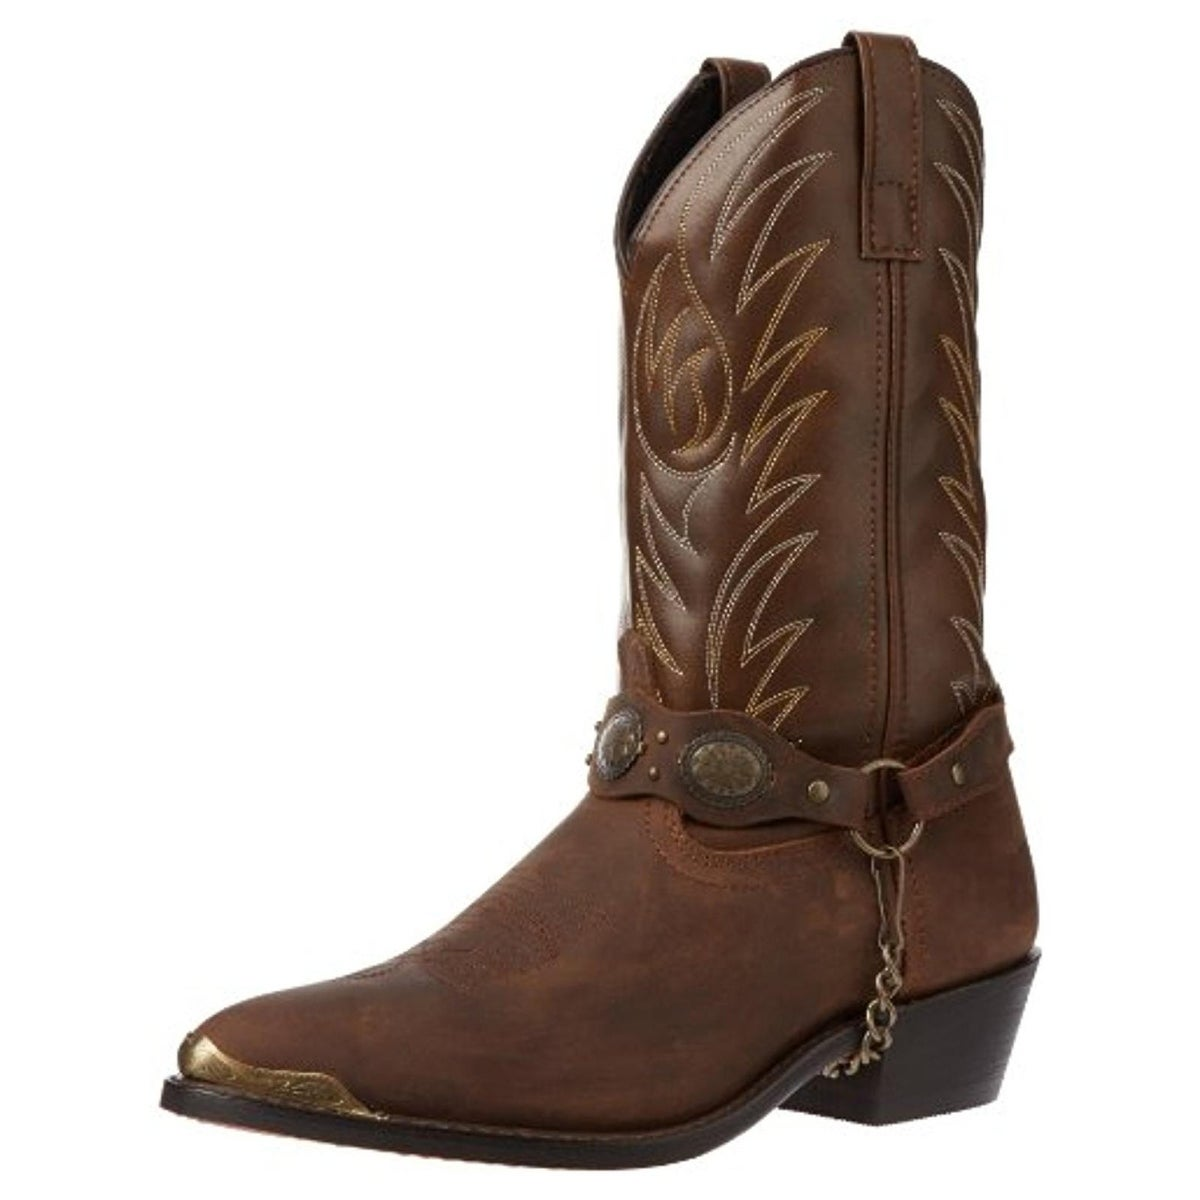 1f2b7e4220d Buy Leather Laredo Men's Boots Online at Overstock | Our Best Men's ...